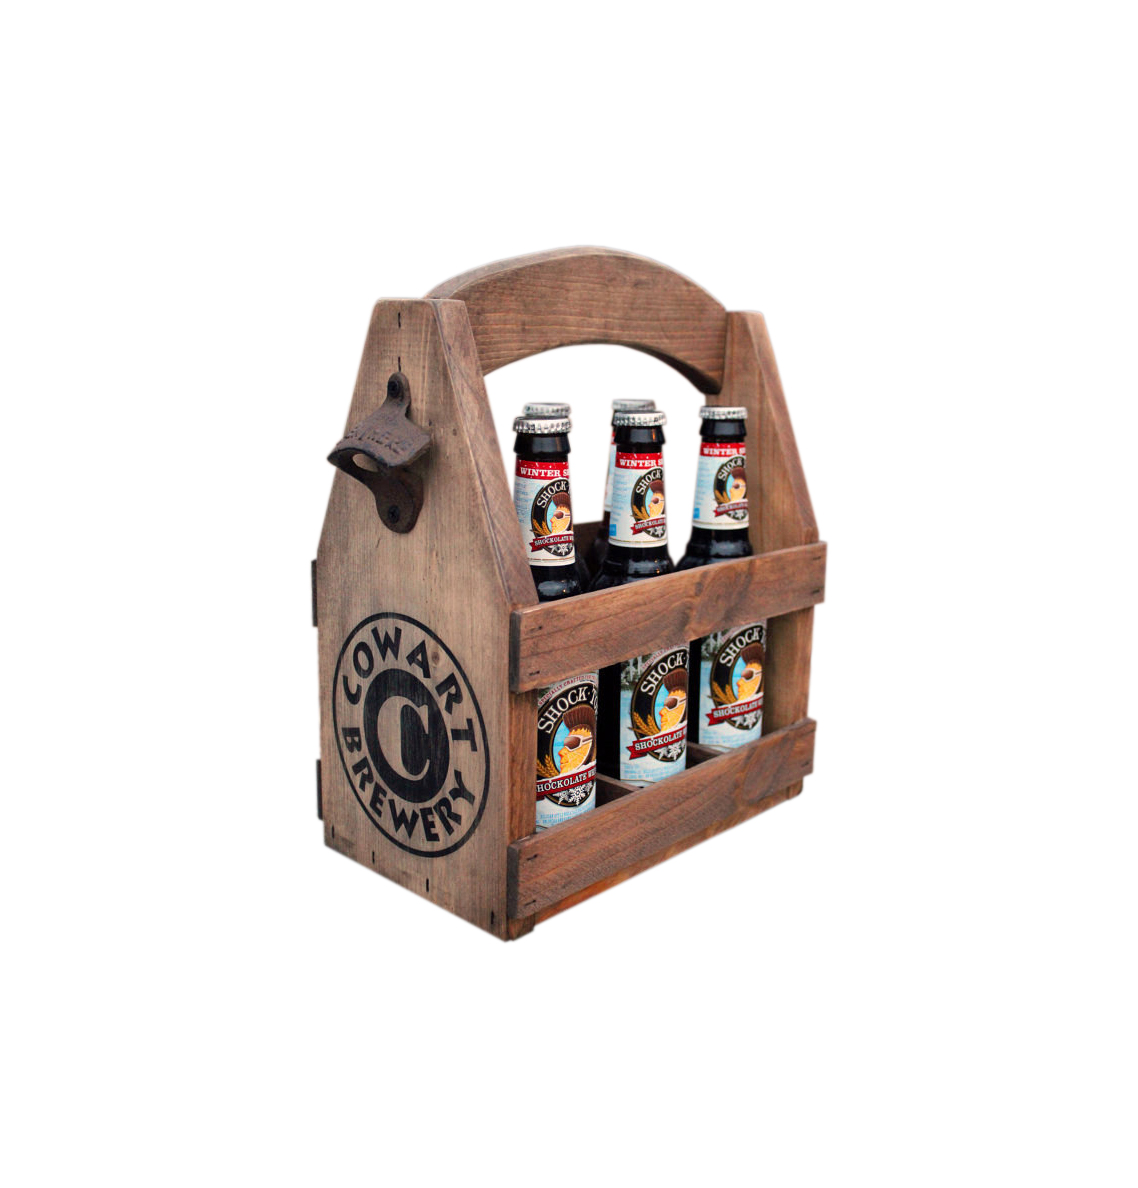 4b34025d846 Wooden Six Pack Beer Tote